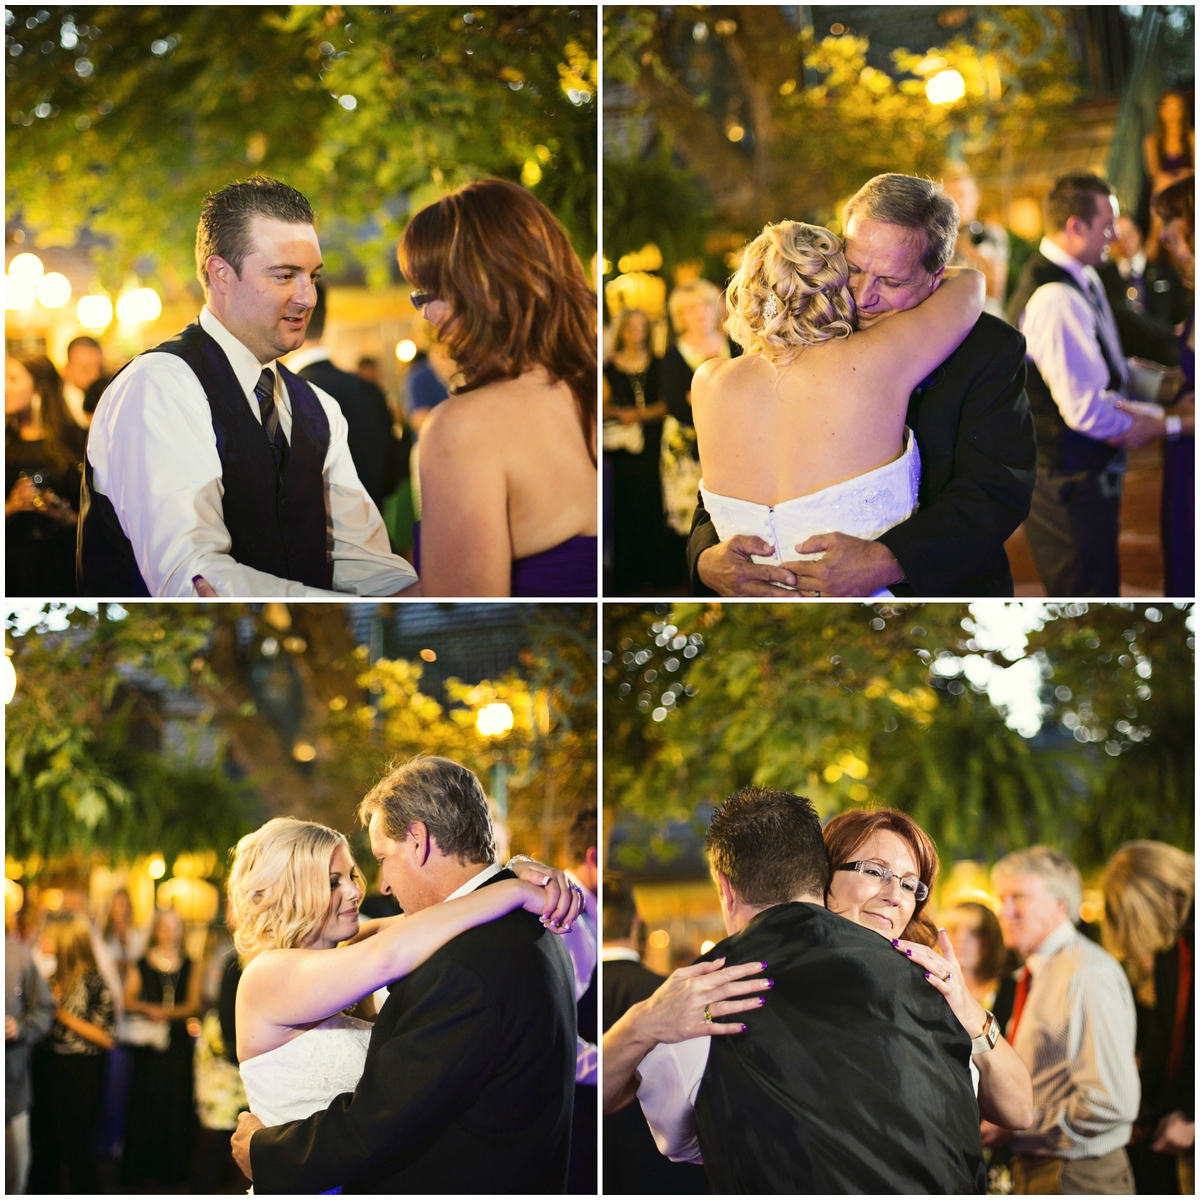 Utah Wedding Photographers, utah wedding photography, La Caille wedding, La Caille, Sandy ut wedding